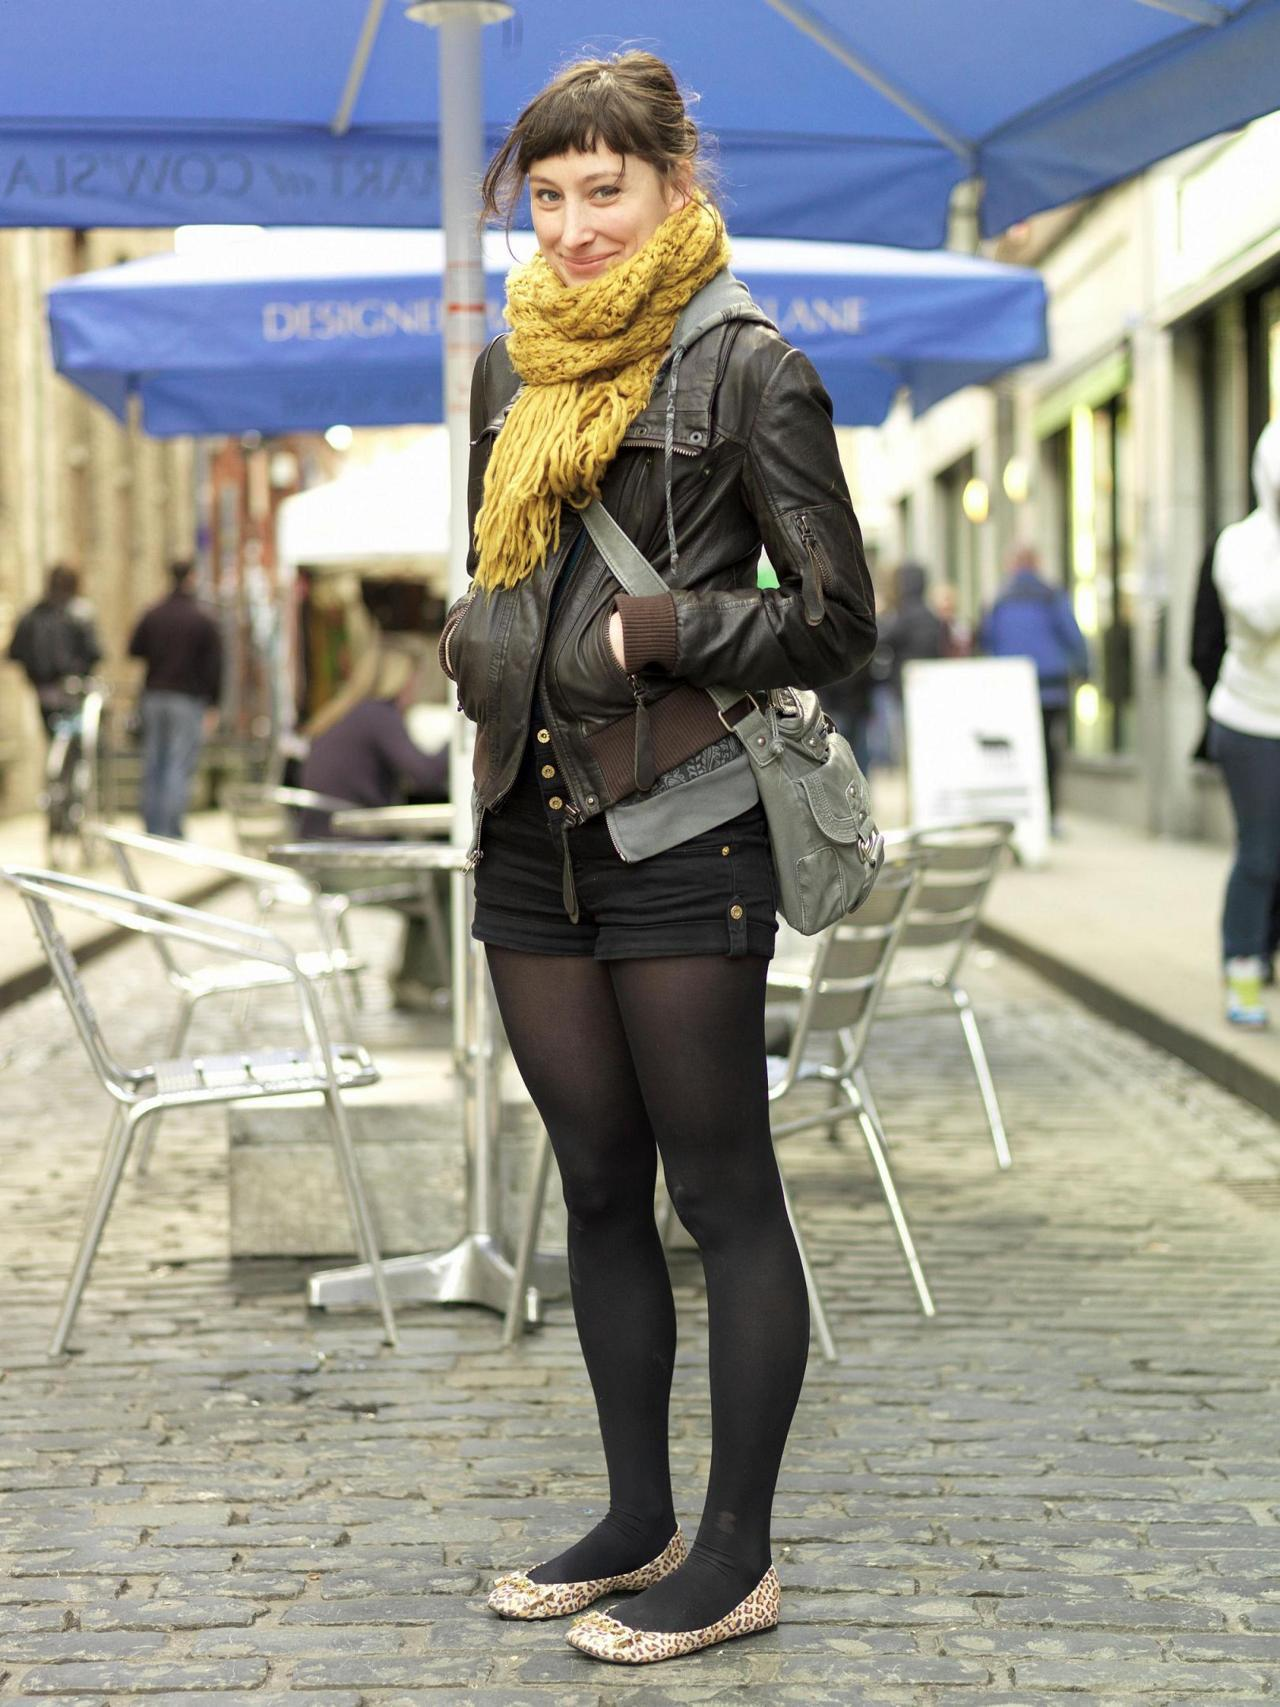 Black tights and shorts with leather jacket and leopard print flats